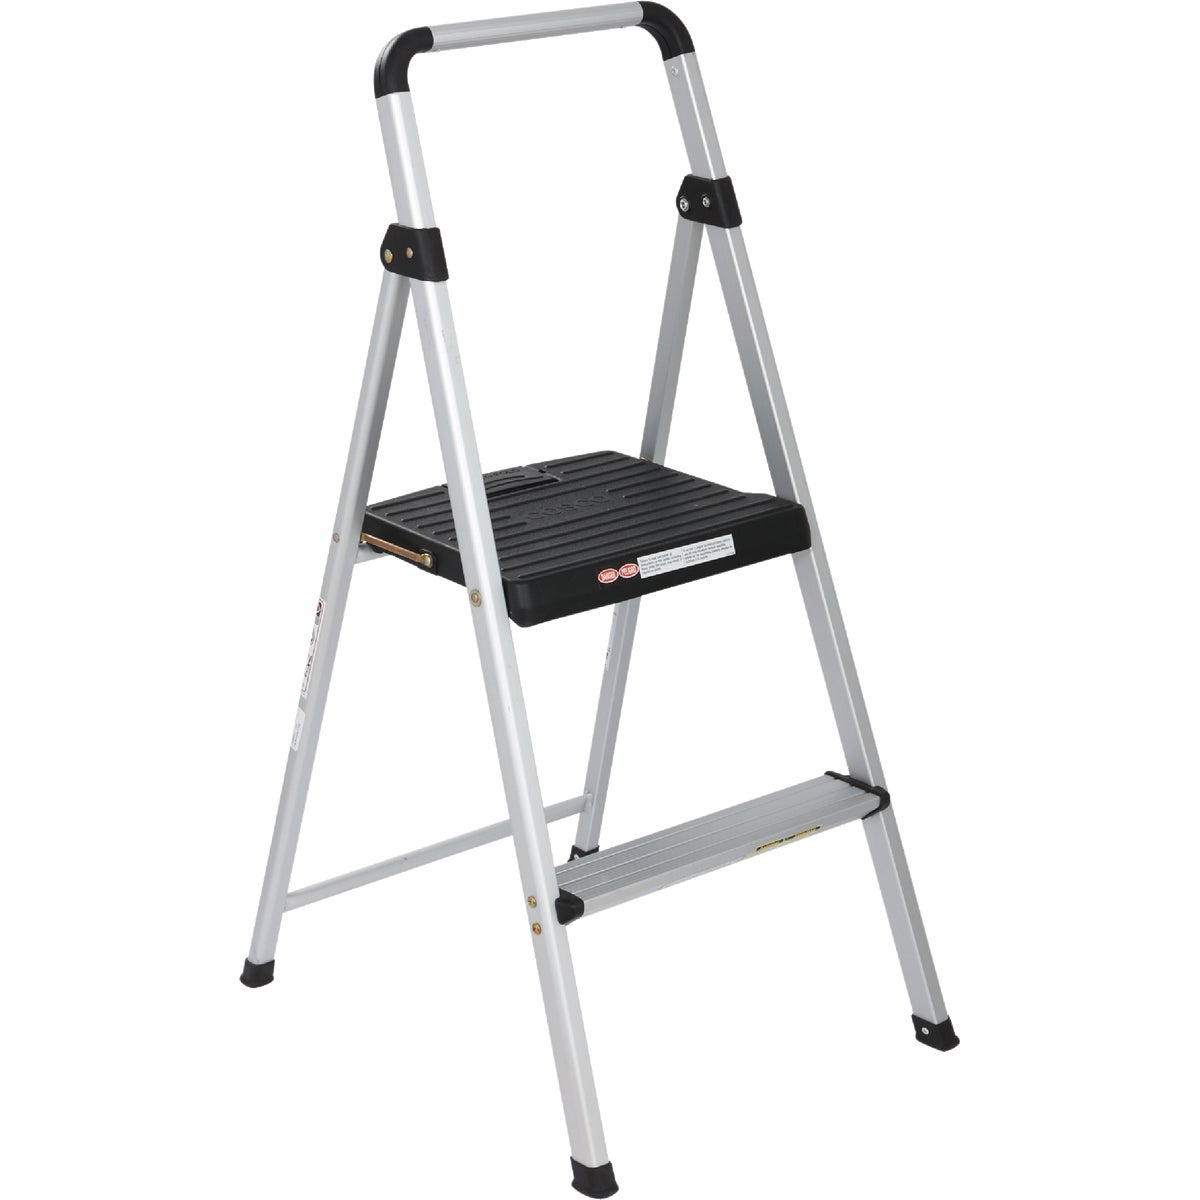 LIGHTWEIGHT STEP STOOL - 11-628-ABK4 by Cosco    J Myalls